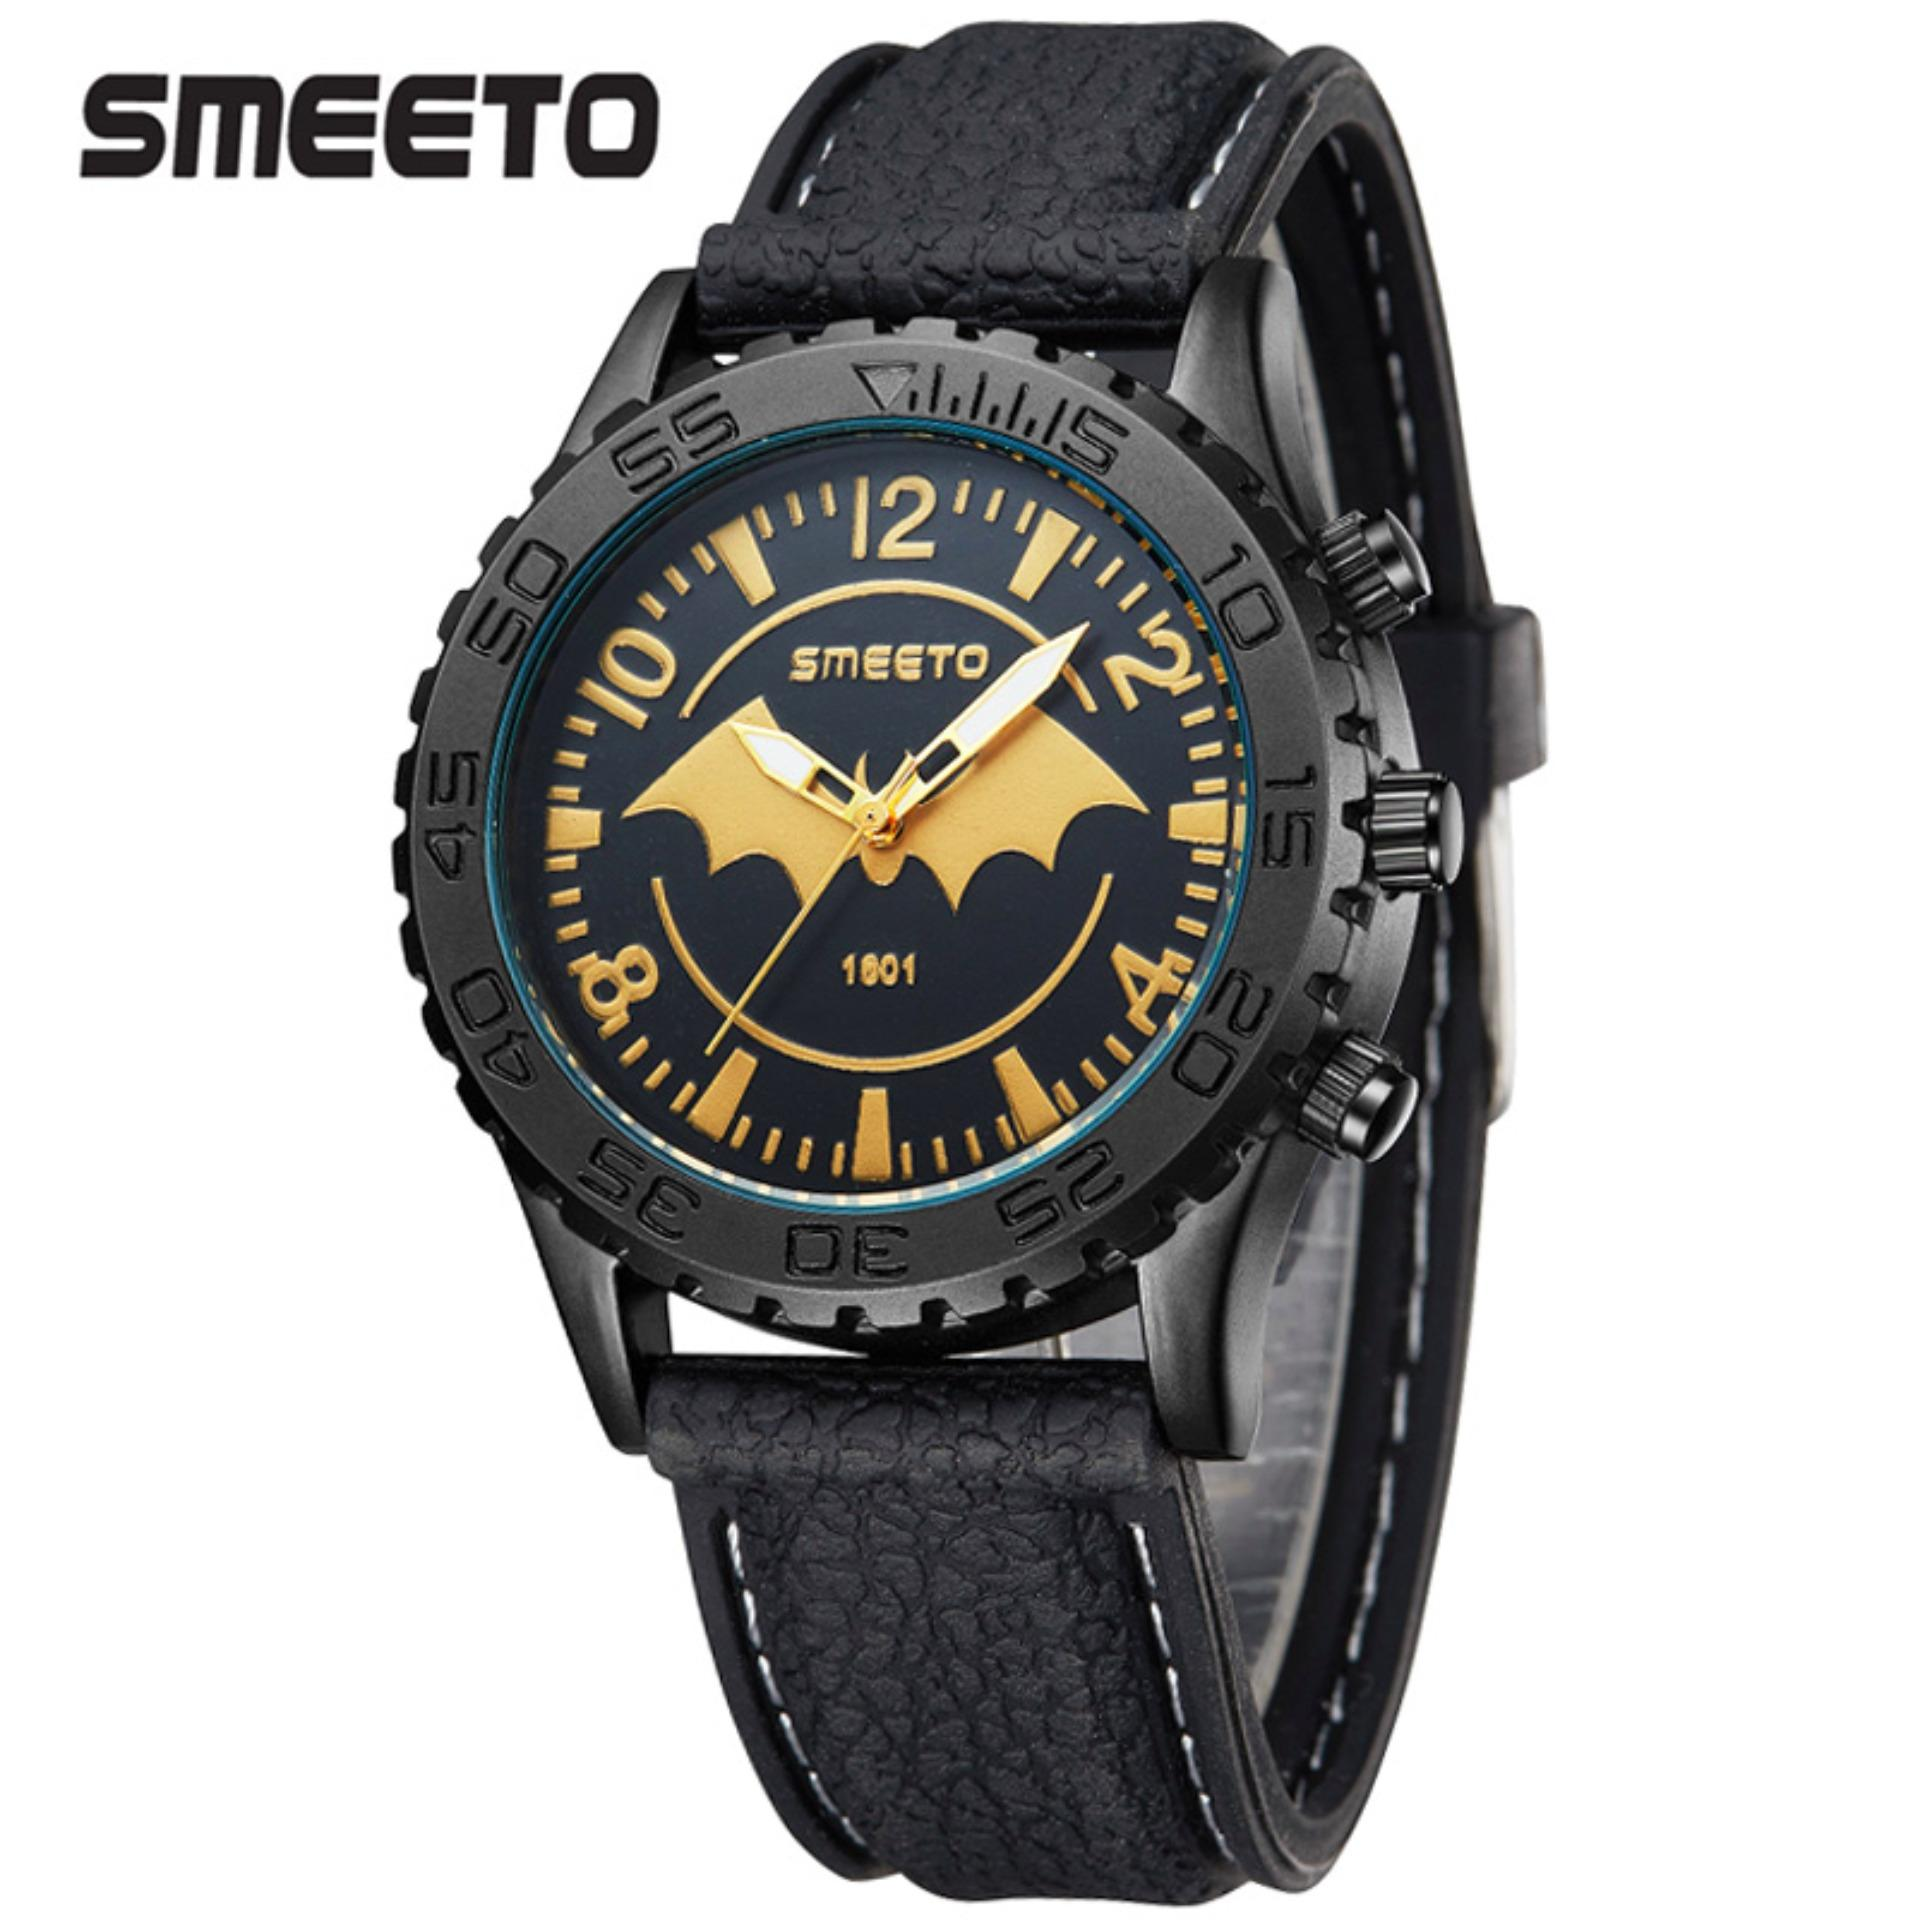 Beli Smeeto Bat Sport Jam Tangan Pria Wanita Fashion Waterproof Analog Quartz Men Lady Watch Black Pake Kartu Kredit